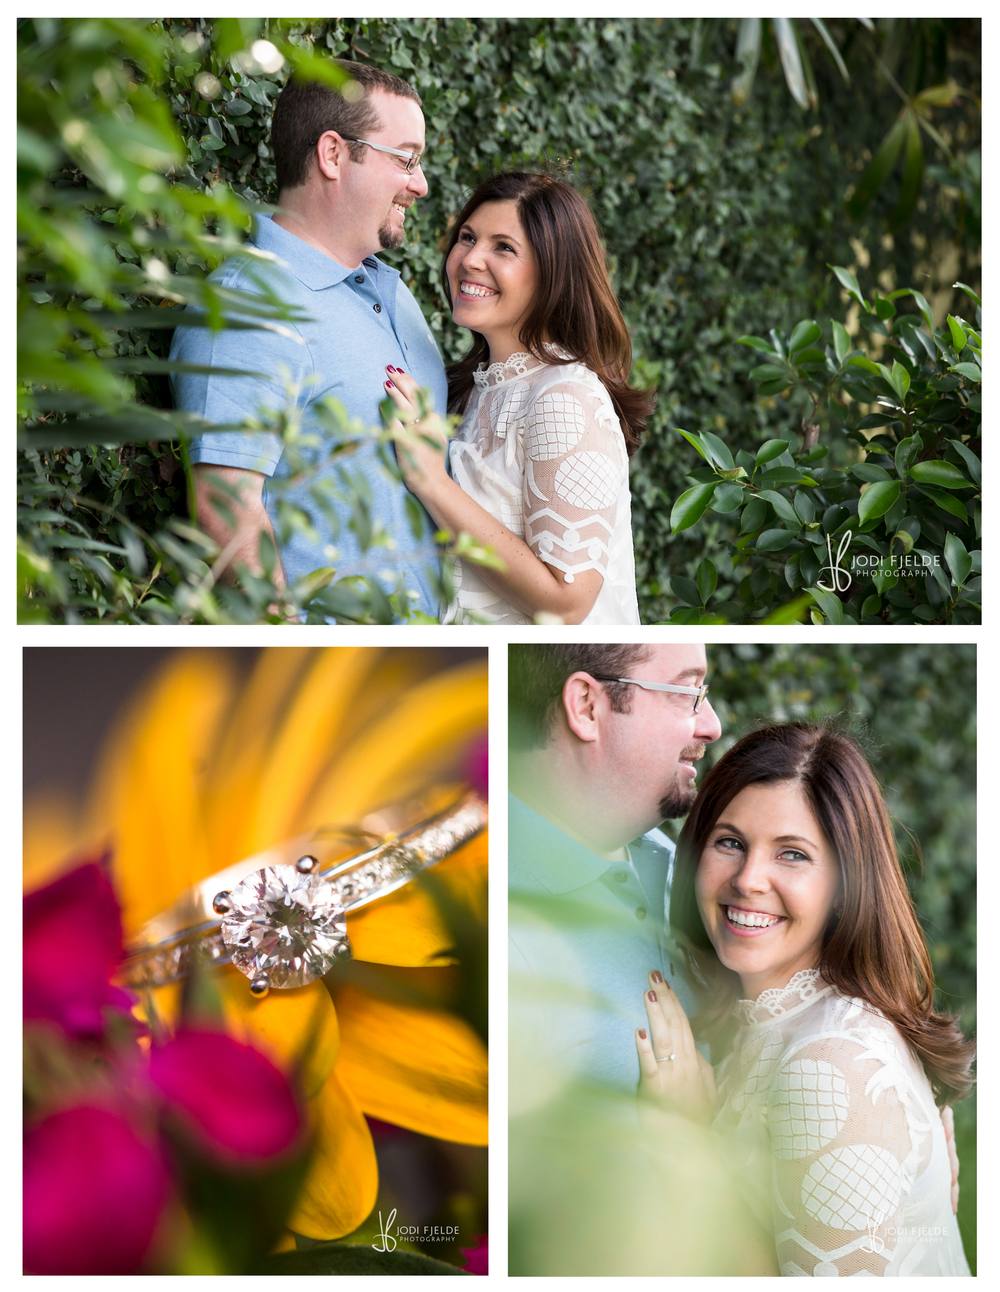 Delray_BEach_Sundy_HouseFlorida_engagement_E-session_Allison_&_Matt_photography_jodi_Fjelde_photography_7.jpg